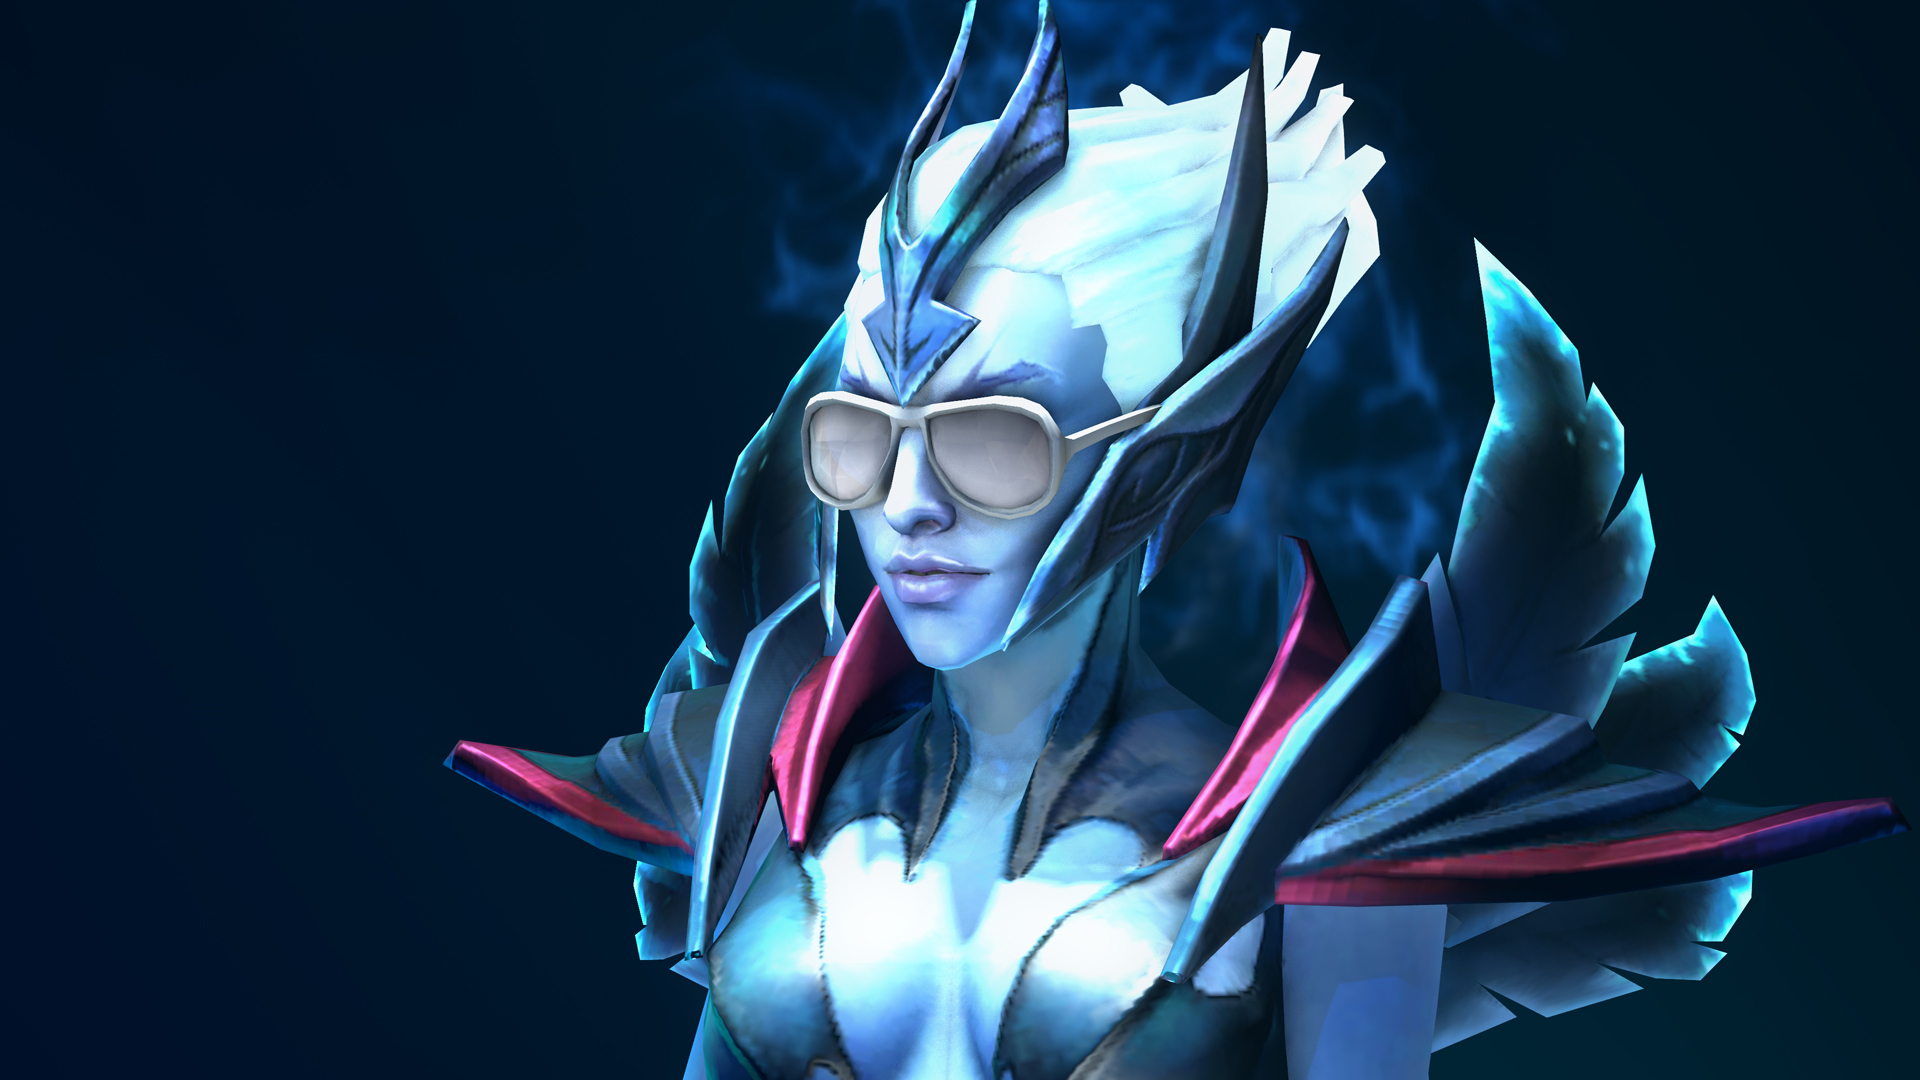 Vengeful Spirit dota 2 гайд